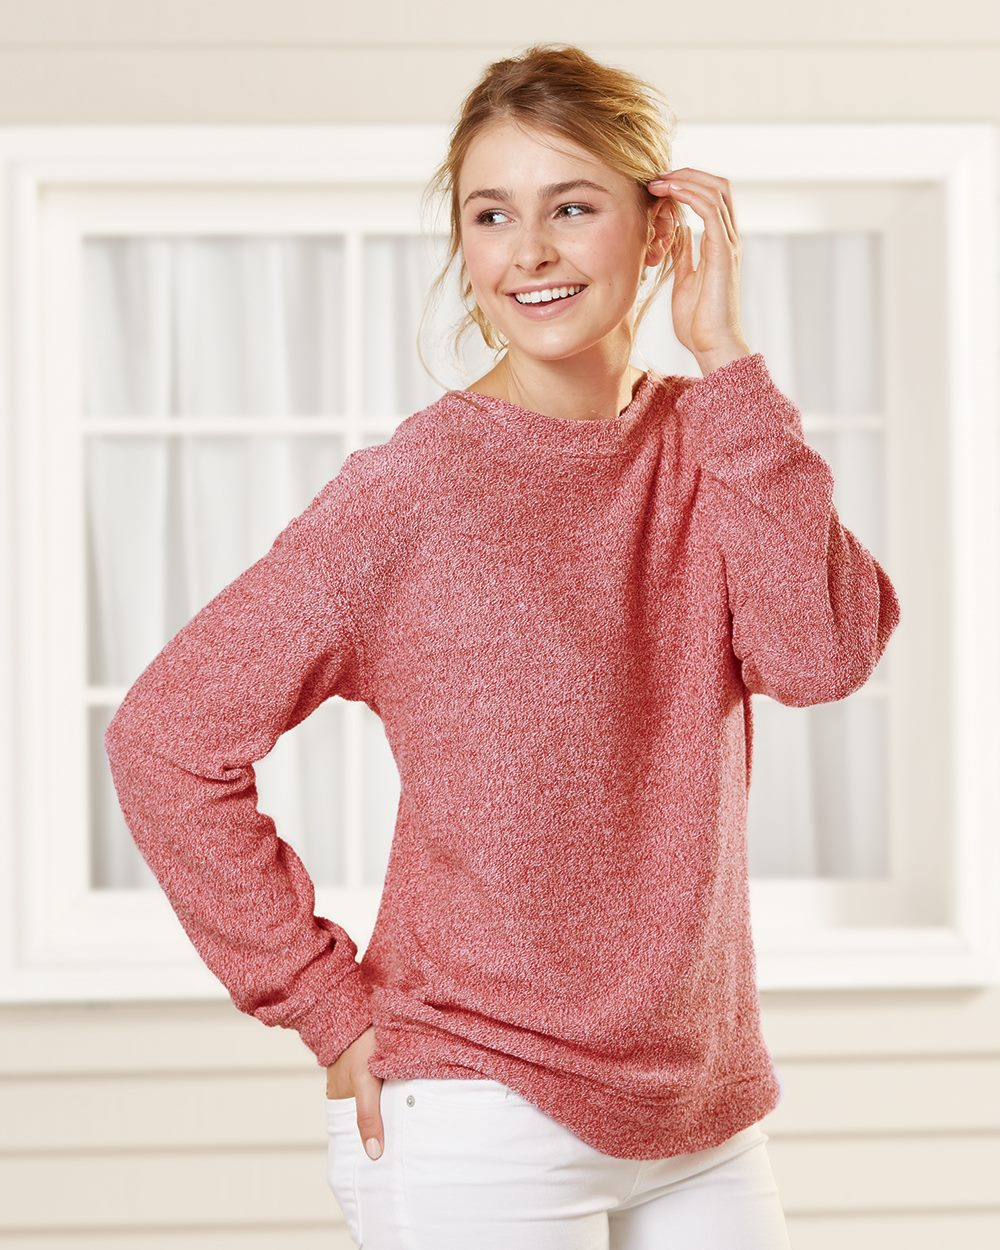 Boxercraft Women's Cozy Crew